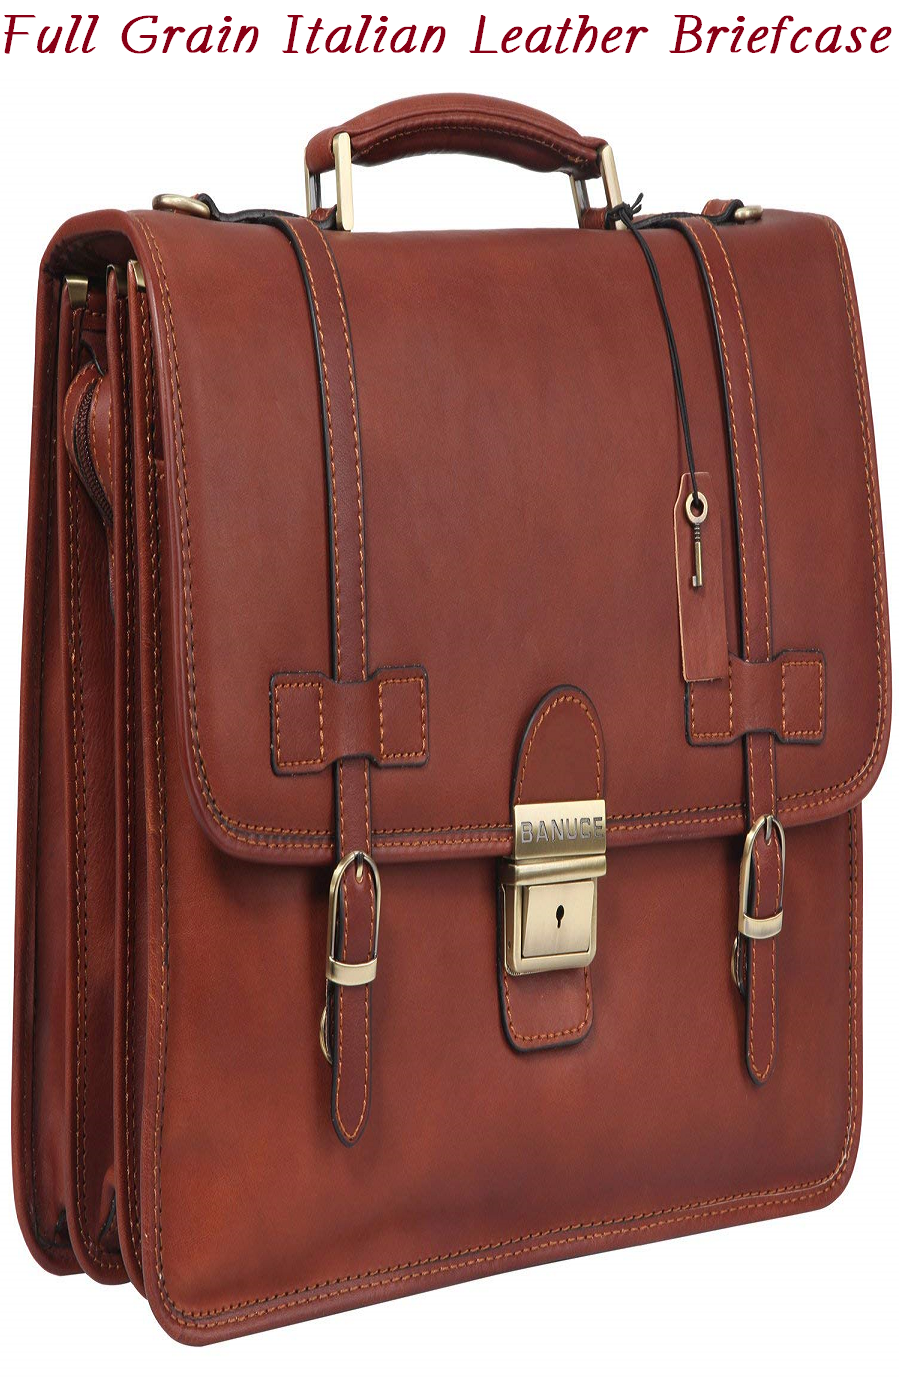 Men's Italian Leather Bag